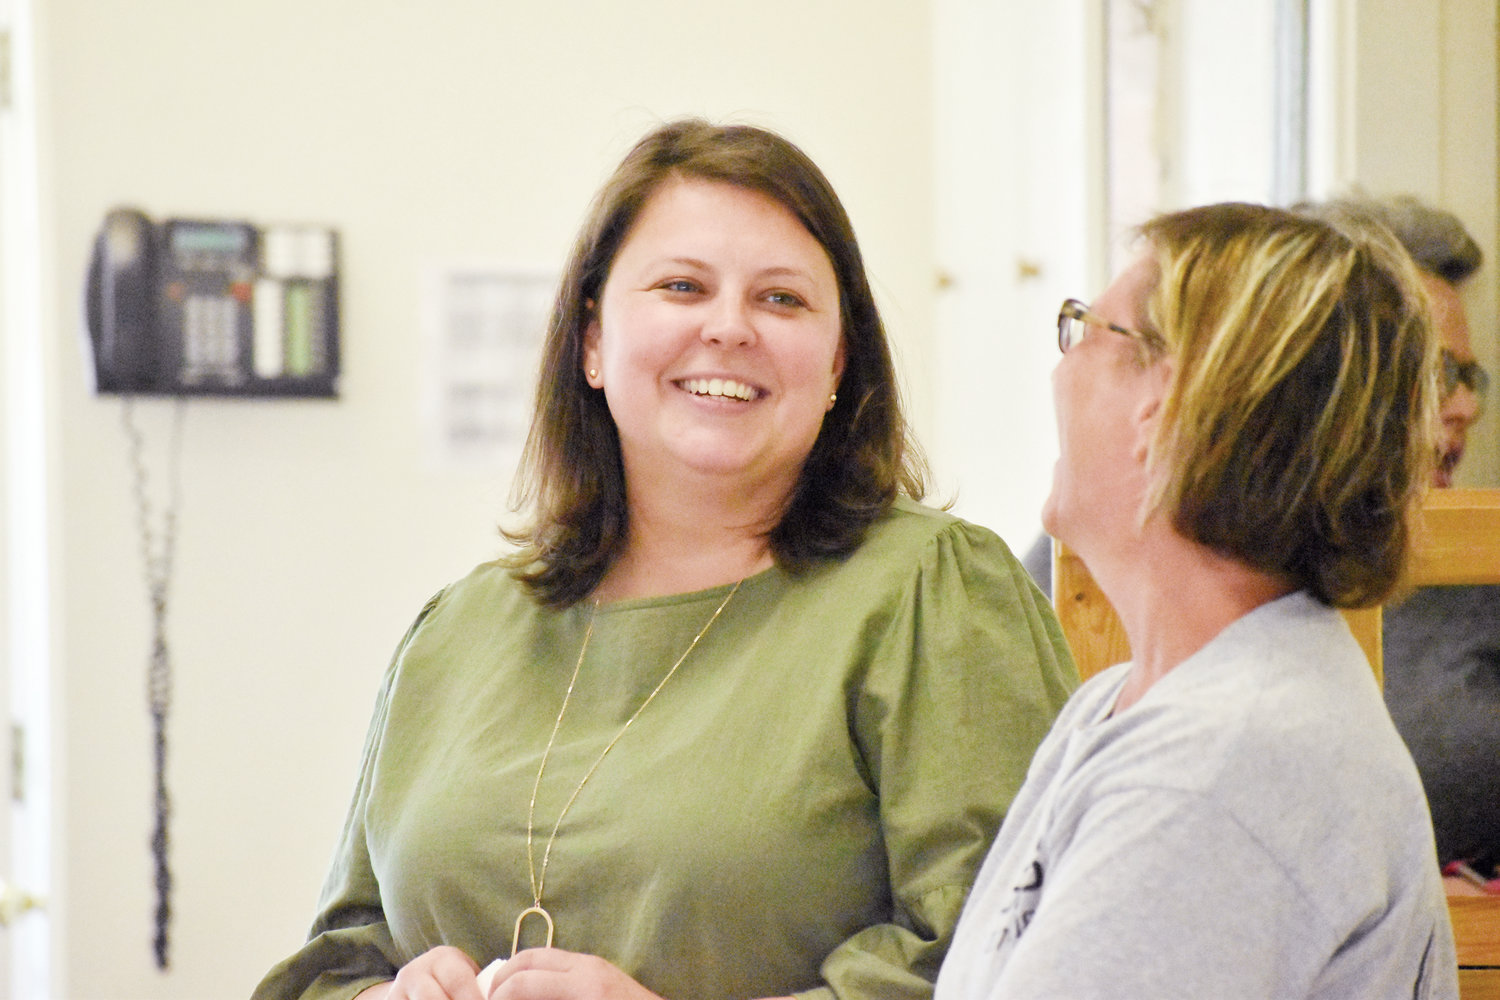 New Bethel Hill Charter School principal Jessica Poole, left, shares a laugh with fourth-grade teacher Nicole Chalk during a meet and greet at the school.